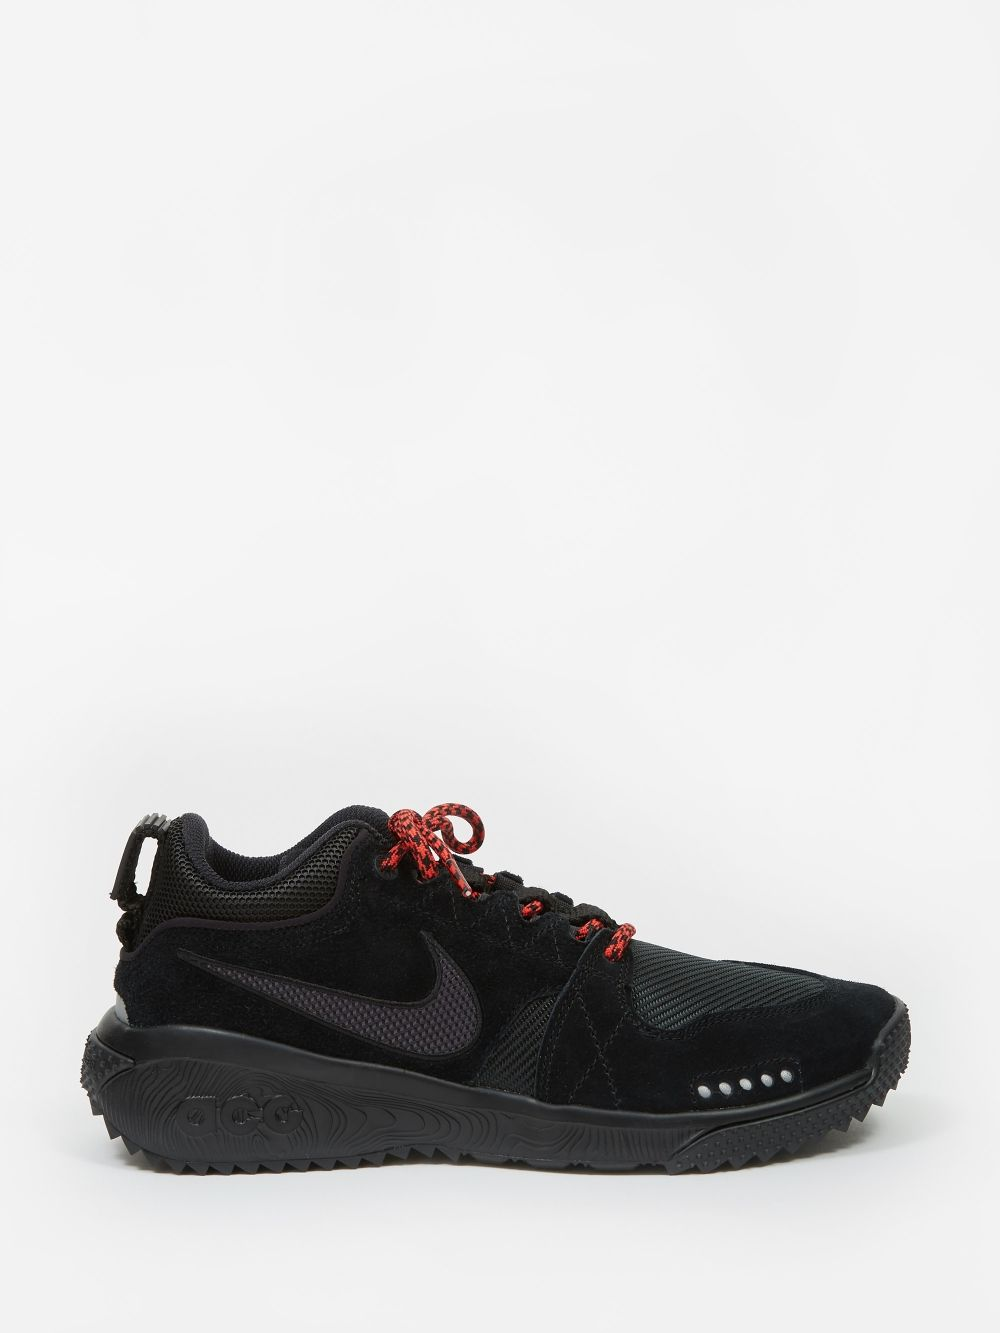 new product 0d9dd c60fa Buy the Nike ACG Dog Mountain in Black Oil Grey-Thunder Grey-Geode